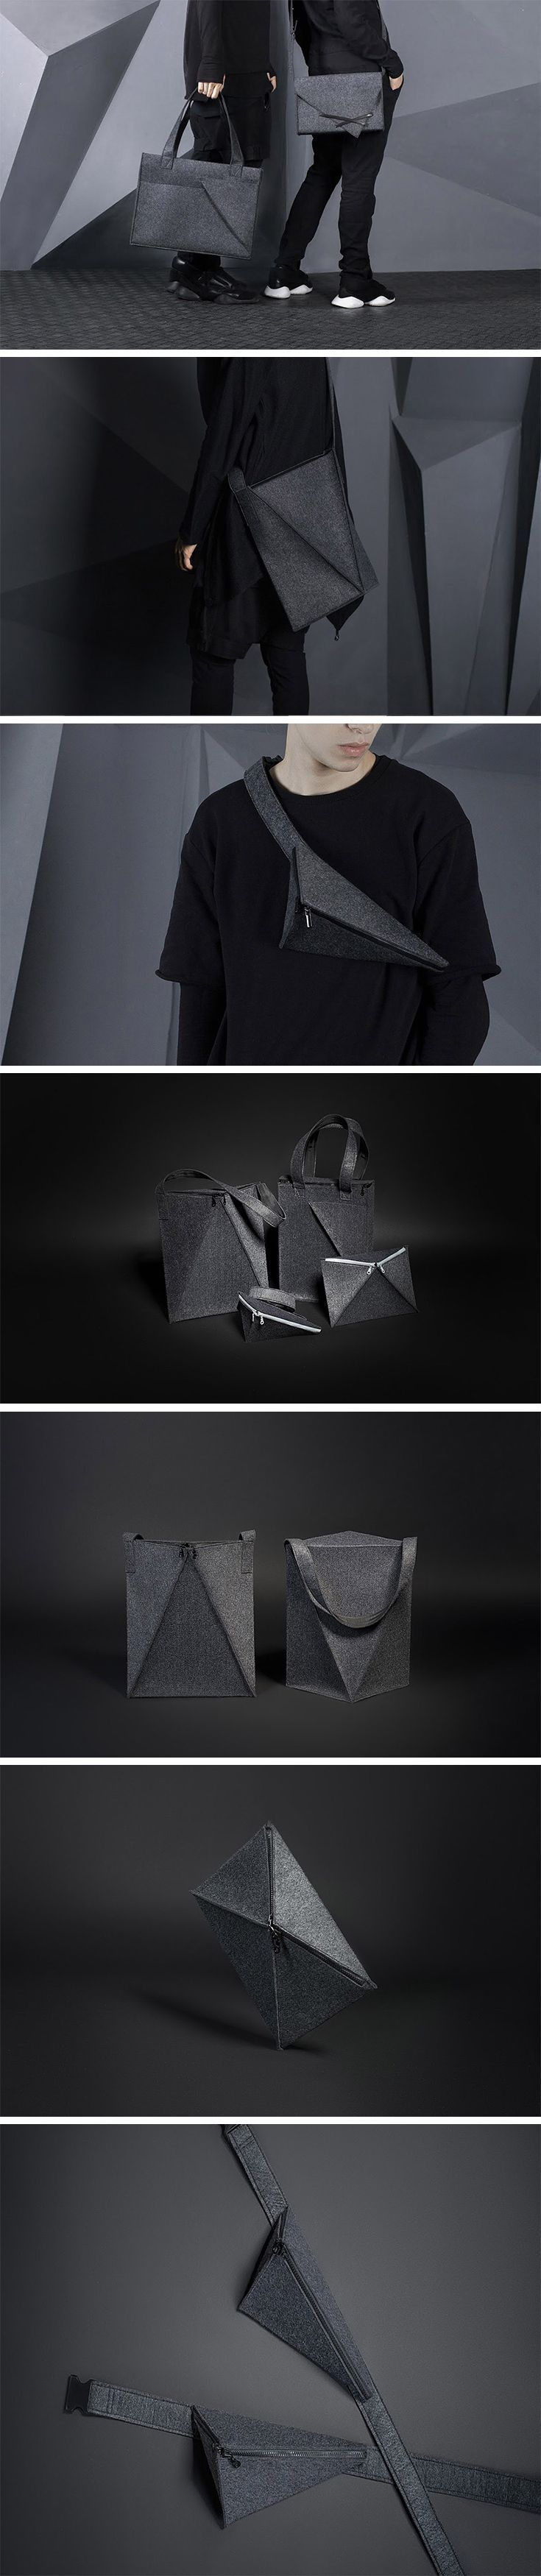 The Slice collection of cozy carryalls consists of two shopper bags, a waist bag, a cross-body satchel and a case-clutch. Inspire by the big city, the line channels the stark grey coloring and geometric figure of many skyscrapers. Made of felt, each is piece is simultaneously soft and tactile yet rigid and dense. The seams are purposefully crafted to ensure the bags stays as flat as possible – hence the name Slice. #Satchels